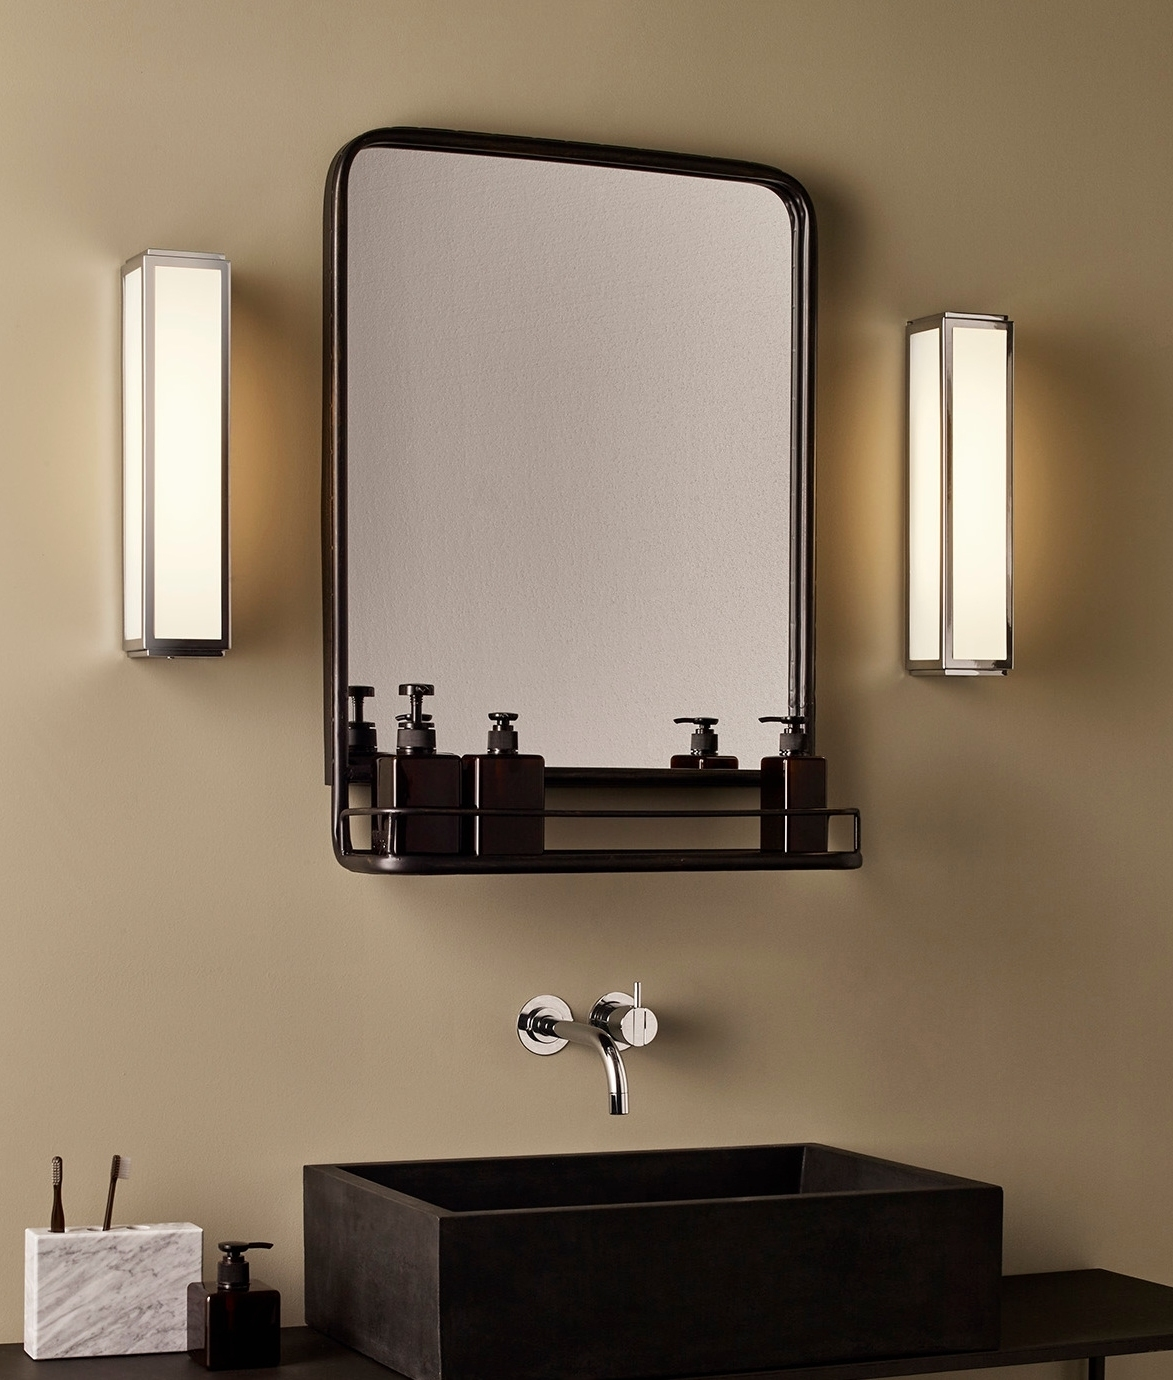 Deco Bathroom Mirror: Stylish Low Energy Wall Light In Art Deco Style